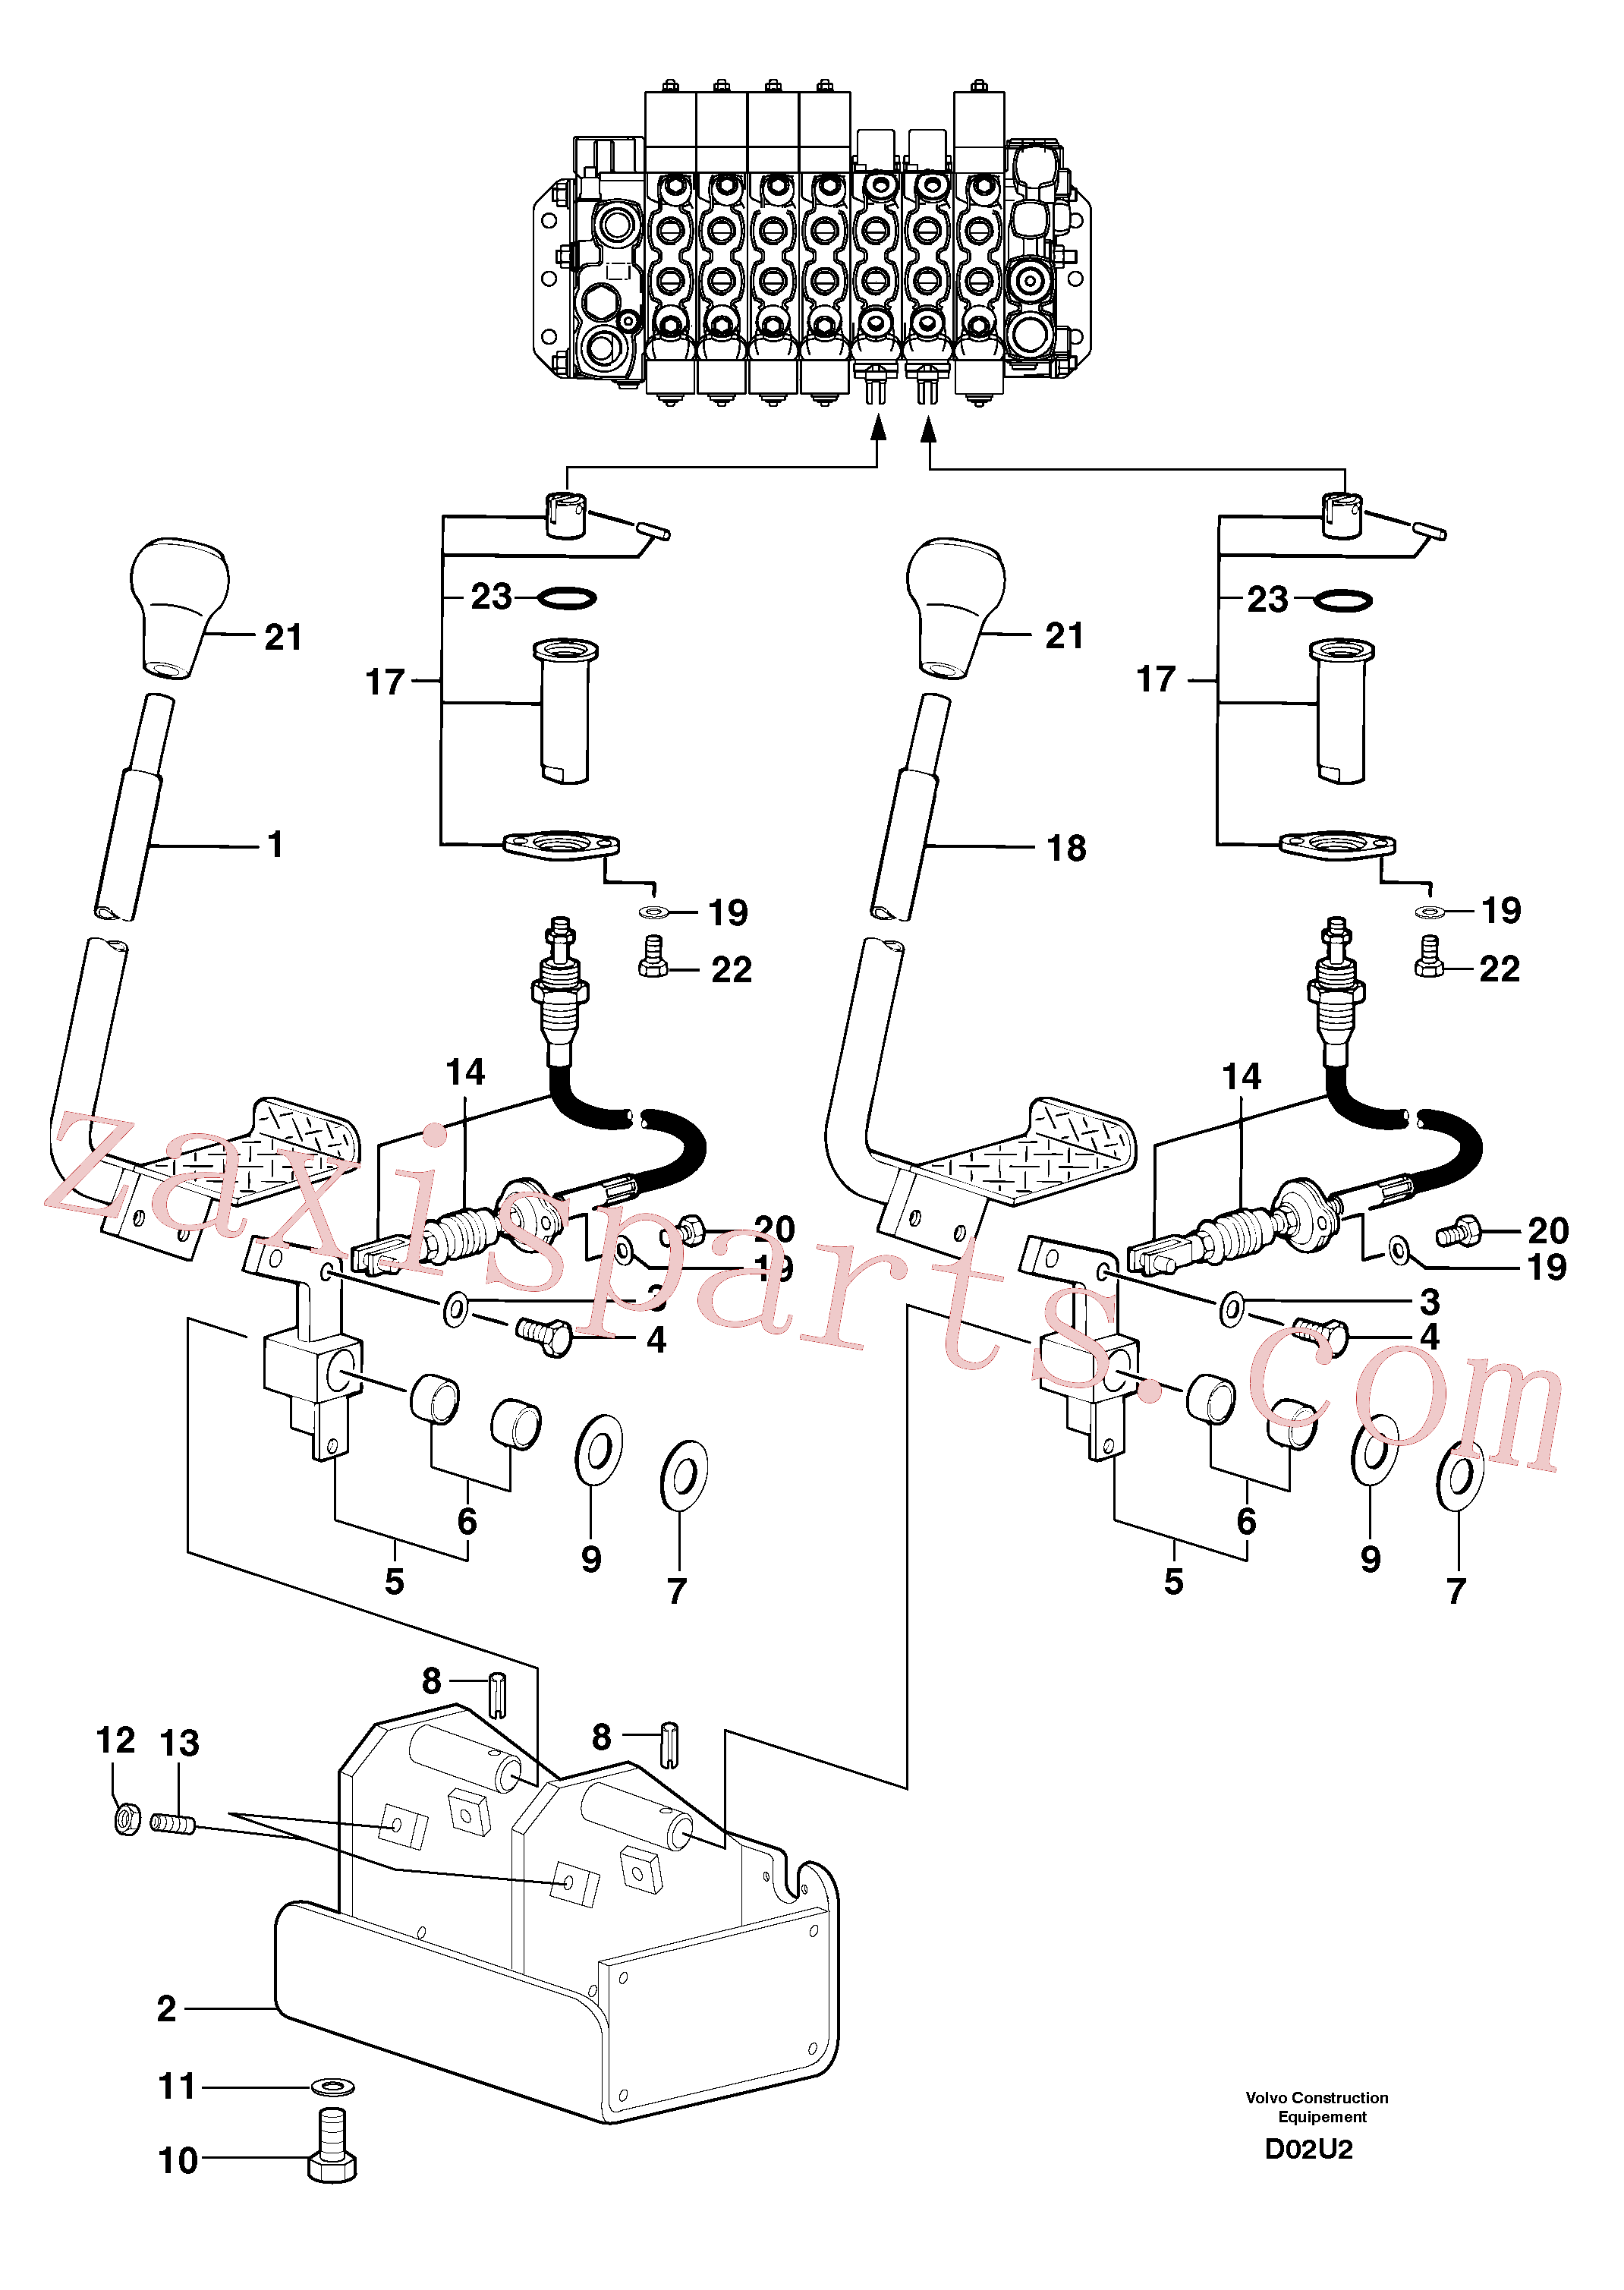 PJ7414522 for Volvo Control levers : travelling(D02U2 assembly)